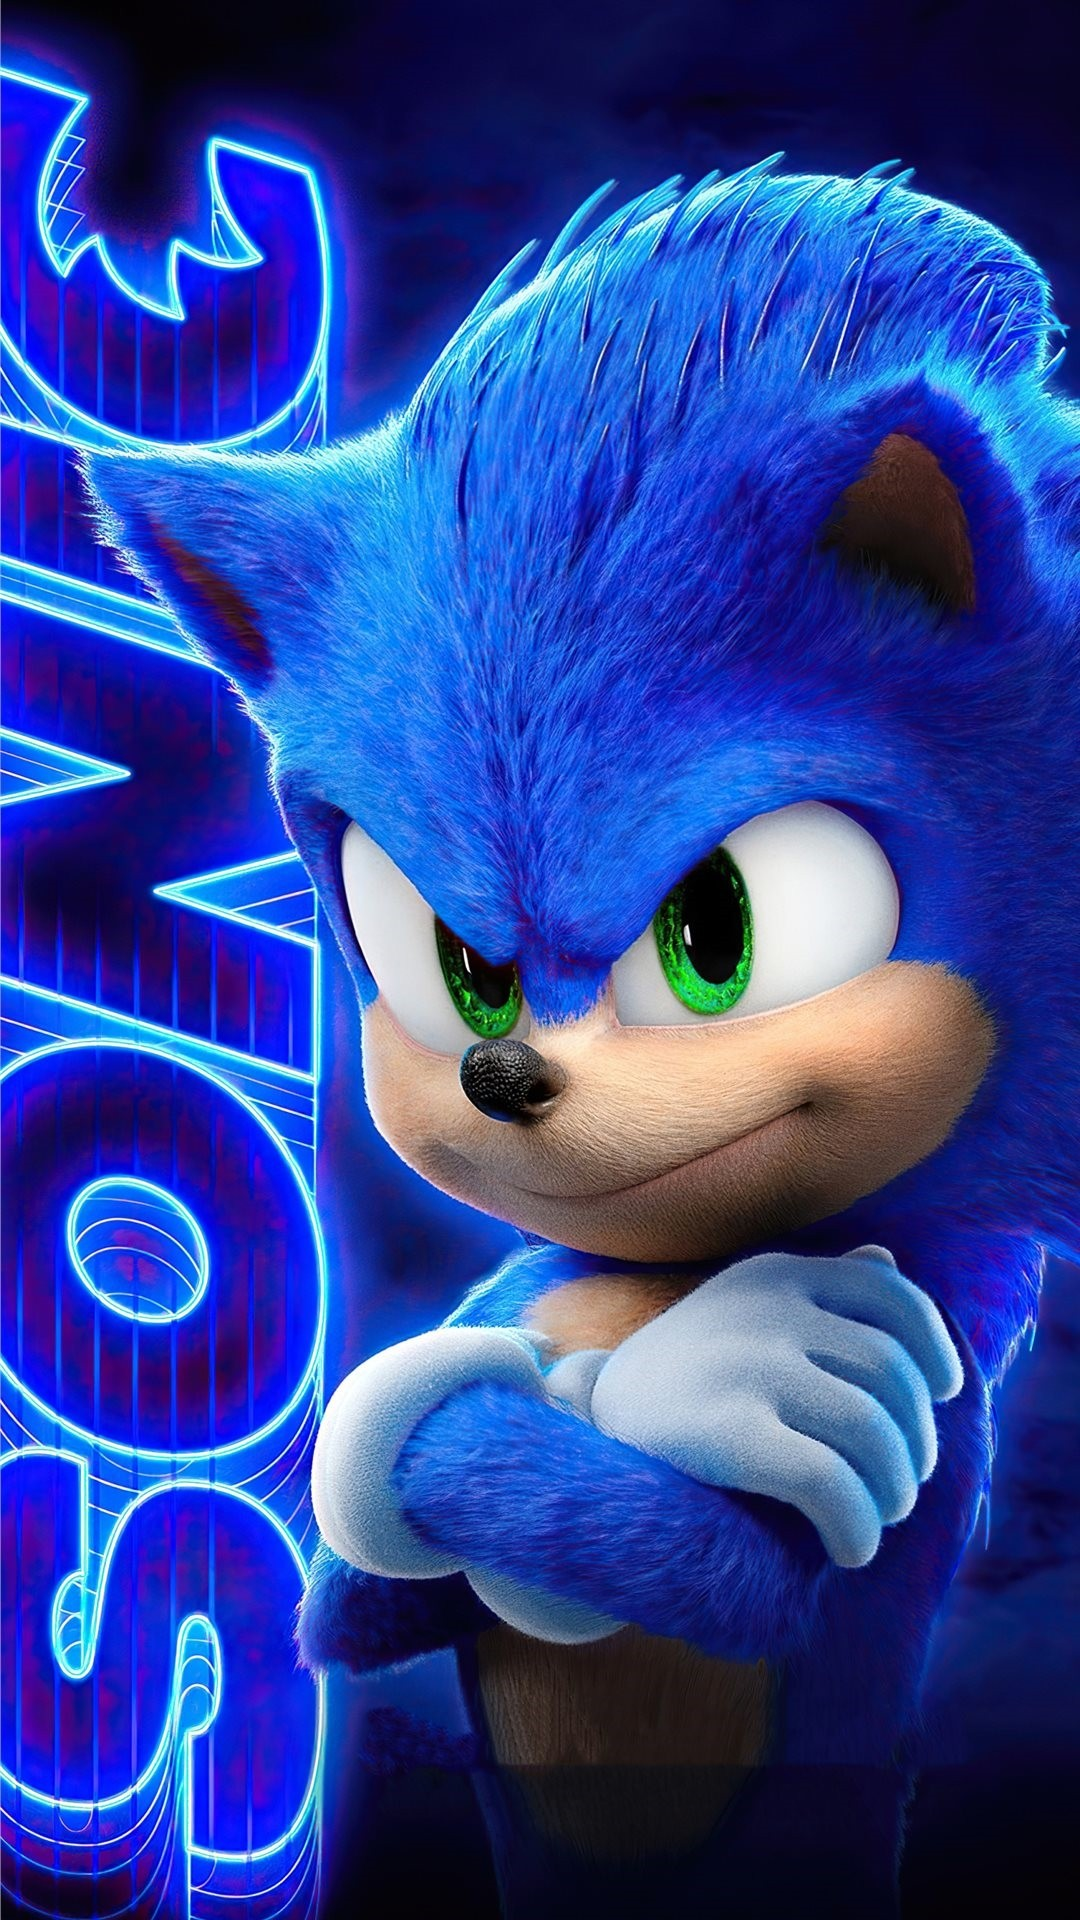 Sonic The Hedgehog wallpaper for android